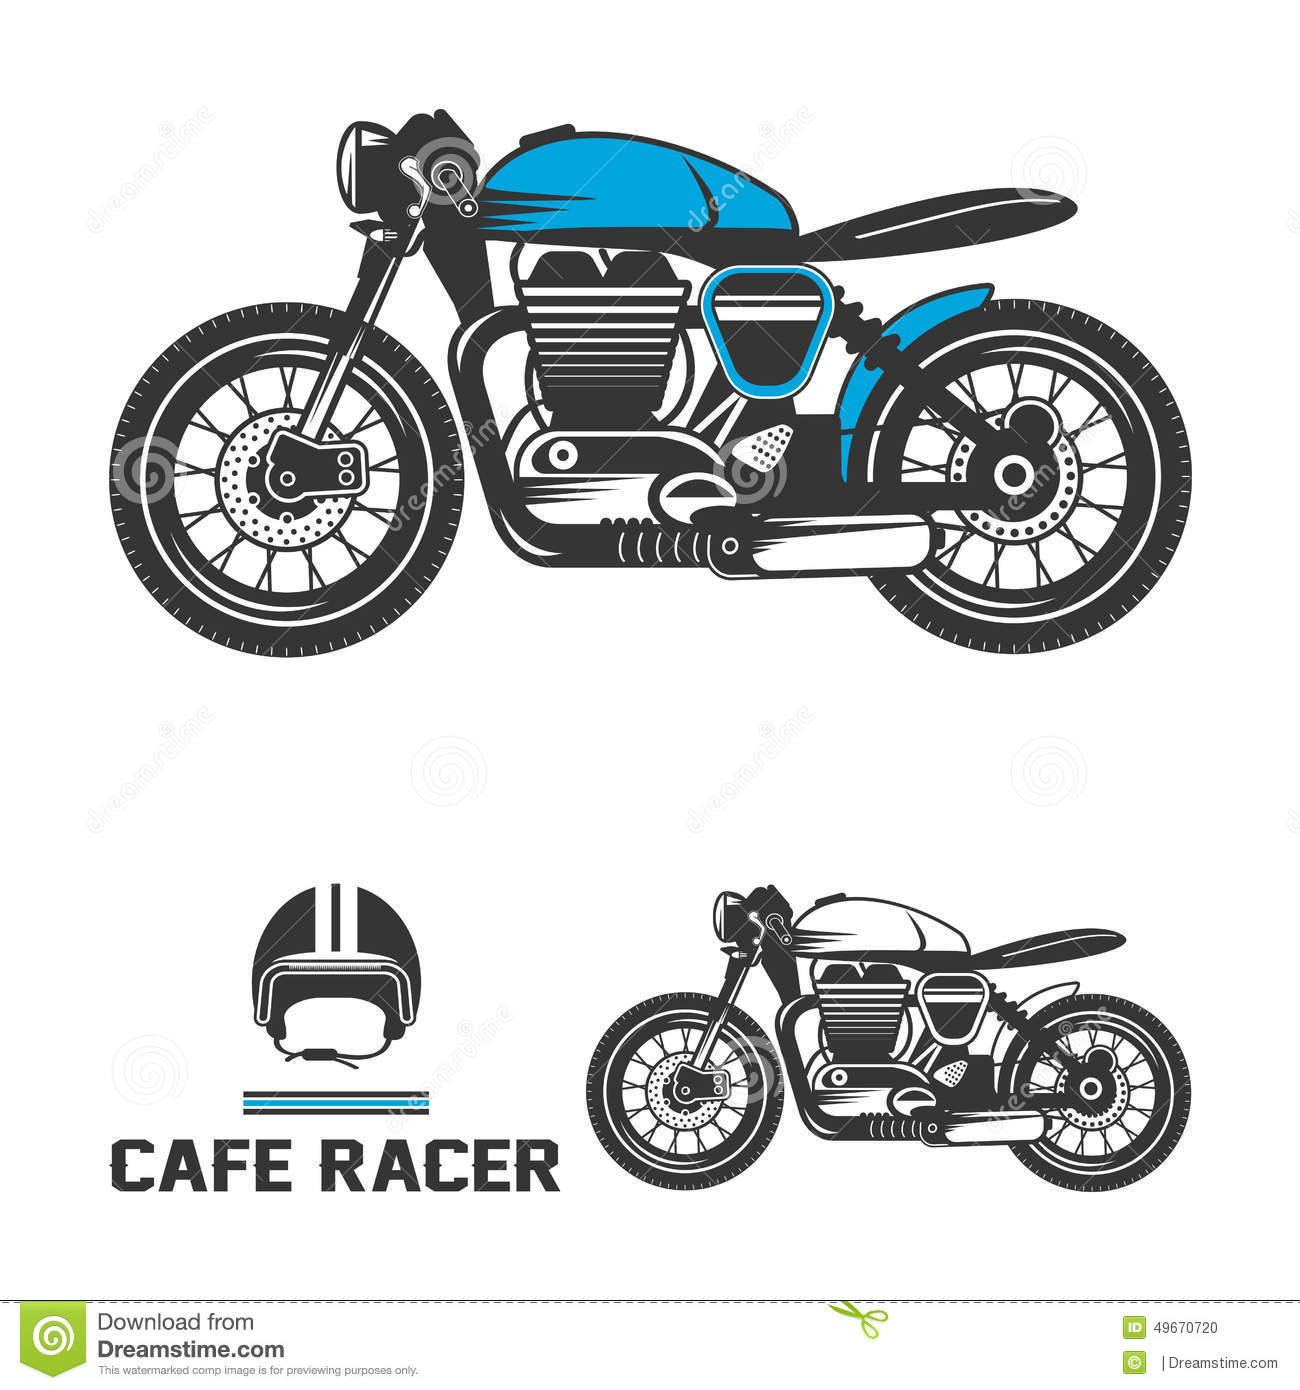 Harley Davidson Prices >> Cafe Racer Motorcycle With Helmet. Stock Vector - Image: 49670720